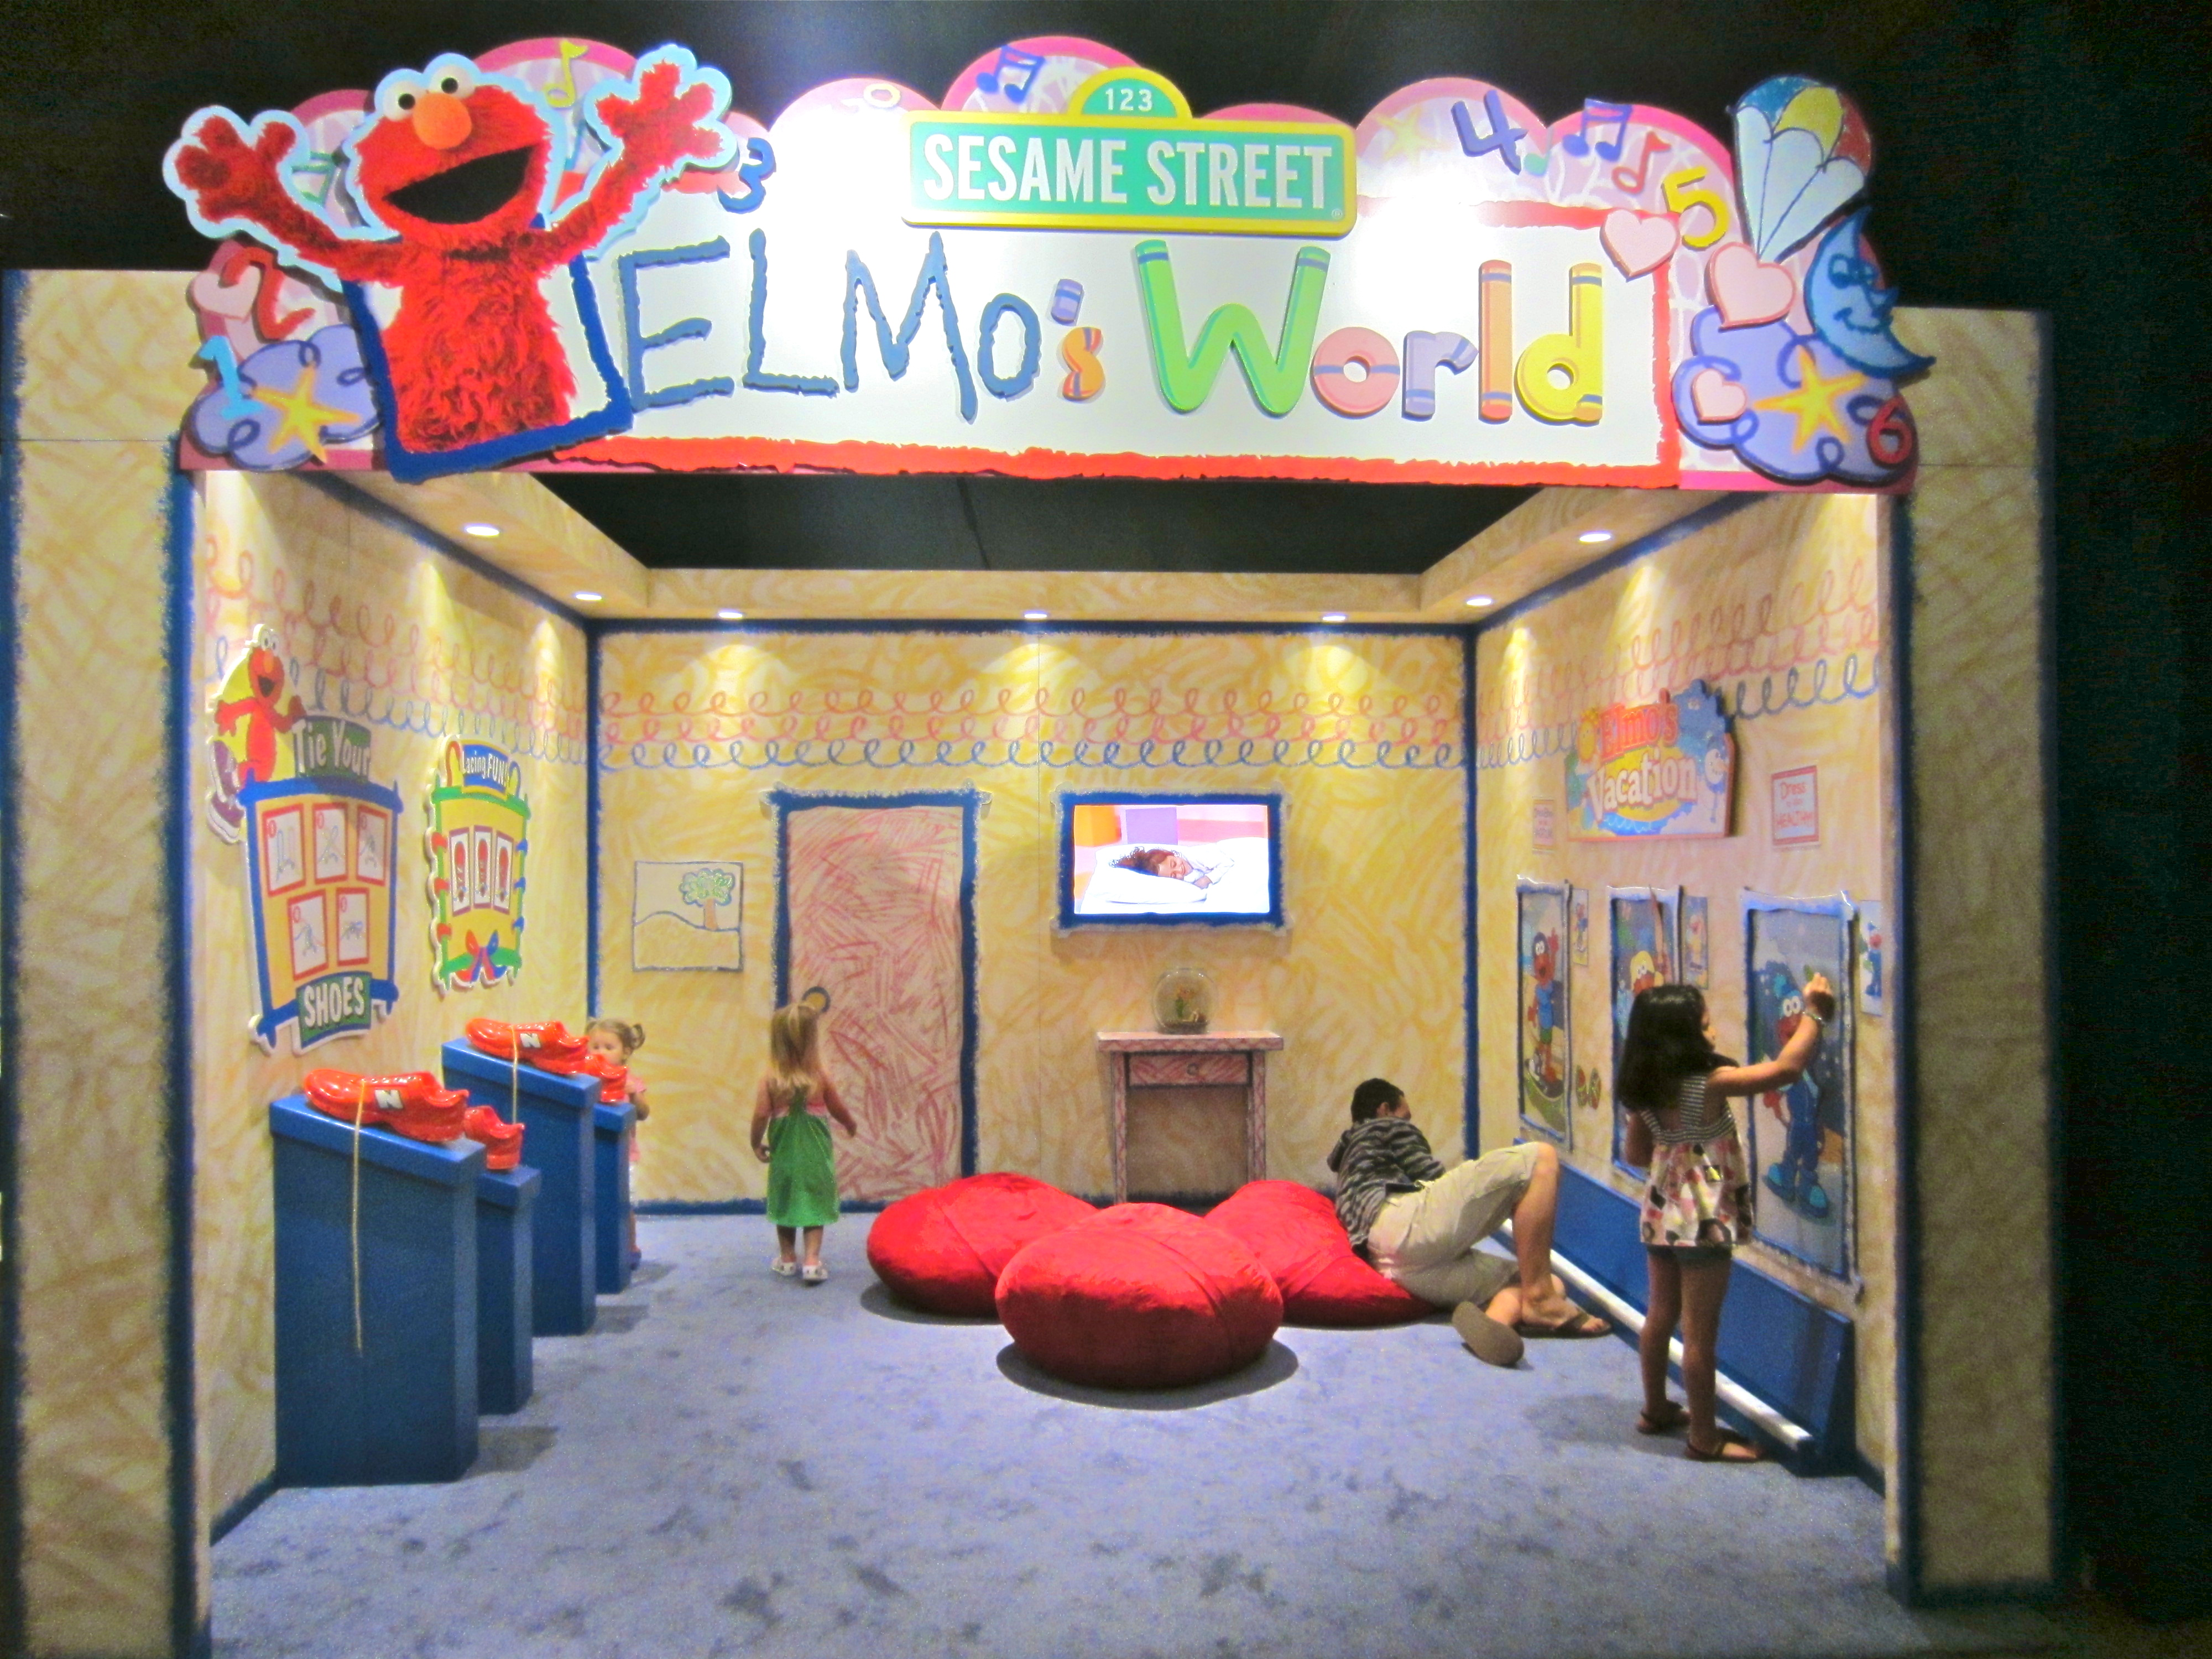 elmo bean bag chair wedding covers cumbria bishop museum exhibits keiki 39s day out